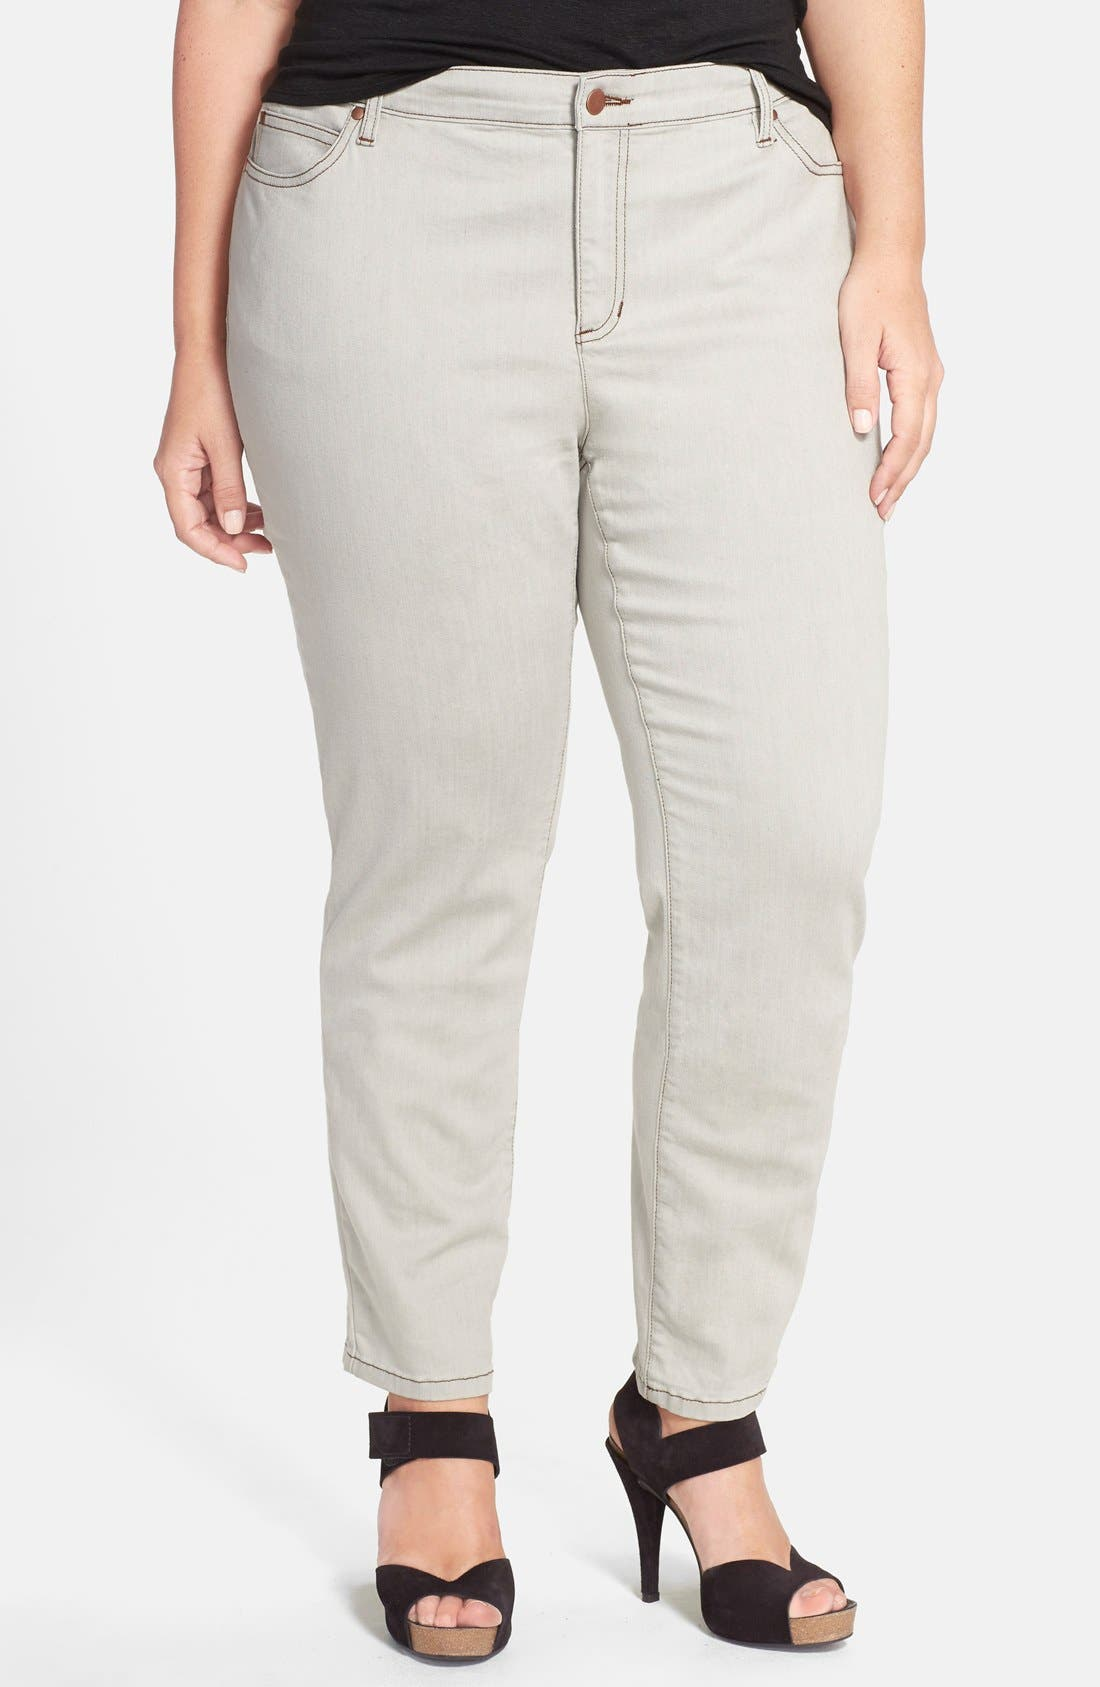 Main Image - Eileen Fisher Slim Ankle Jeans (Sunbleached Grey) (Plus Size)